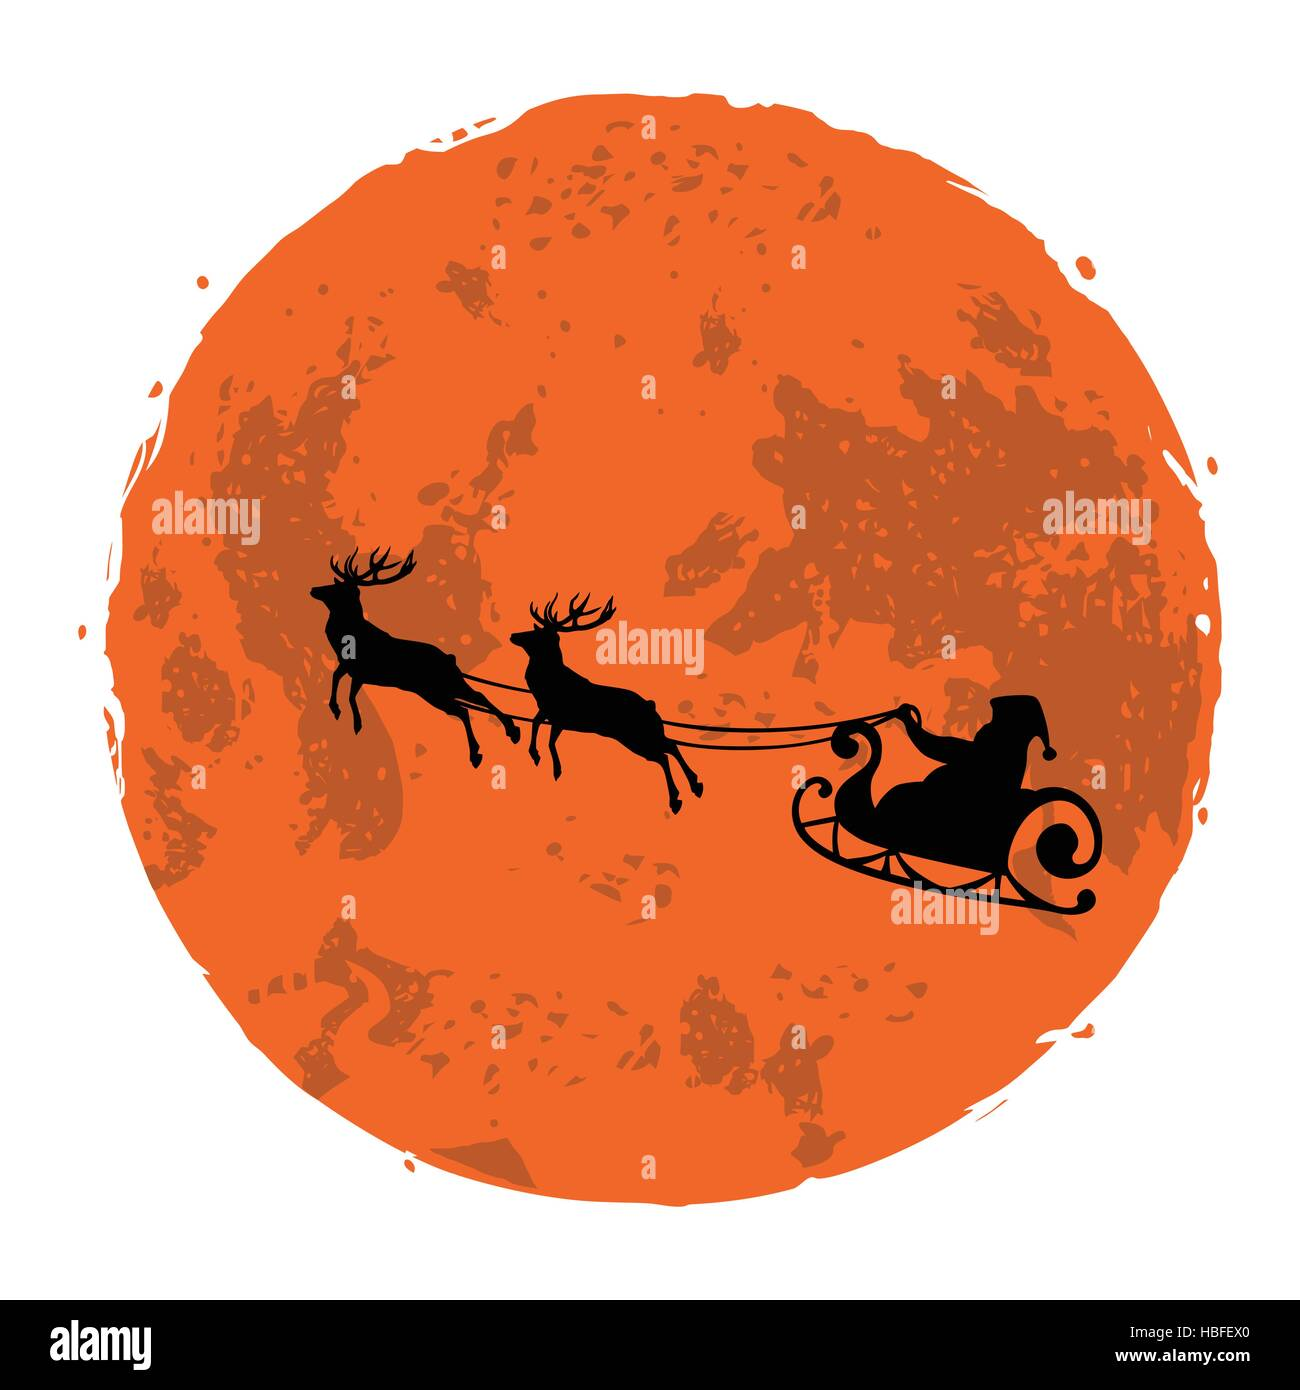 Christmas Illustration of Santa and His Reindeer on Full Moon Background Vector - Stock Image